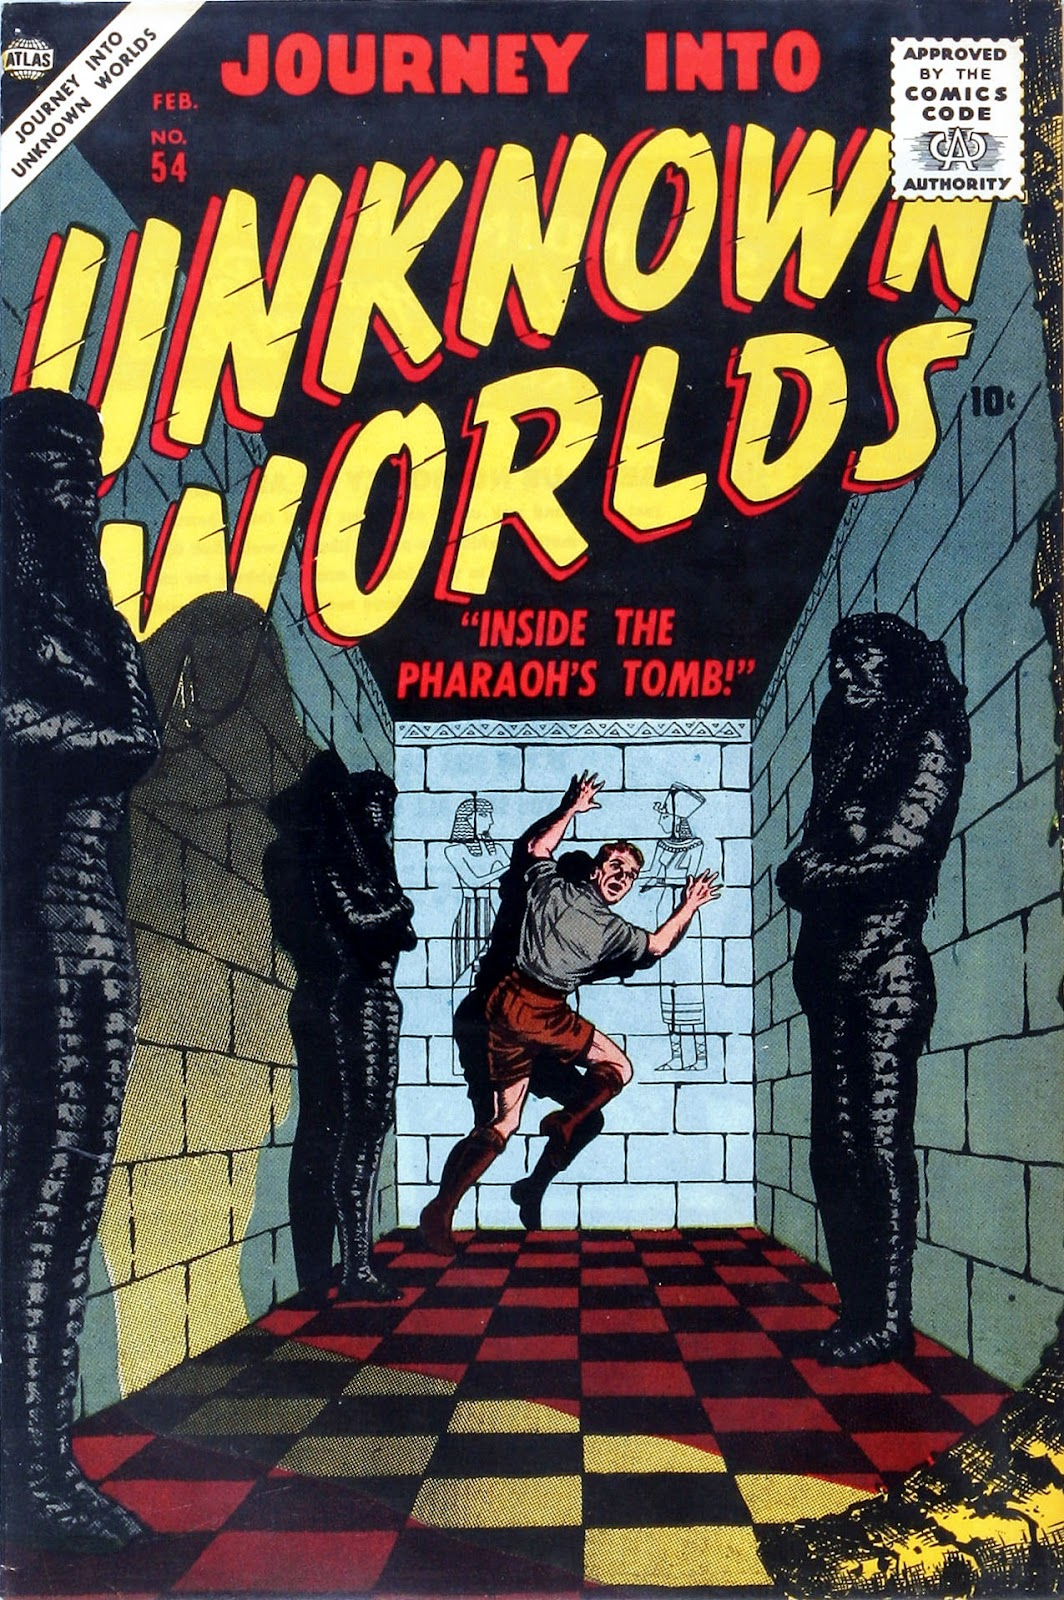 Journey Into Unknown Worlds (1950) issue 54 - Page 1